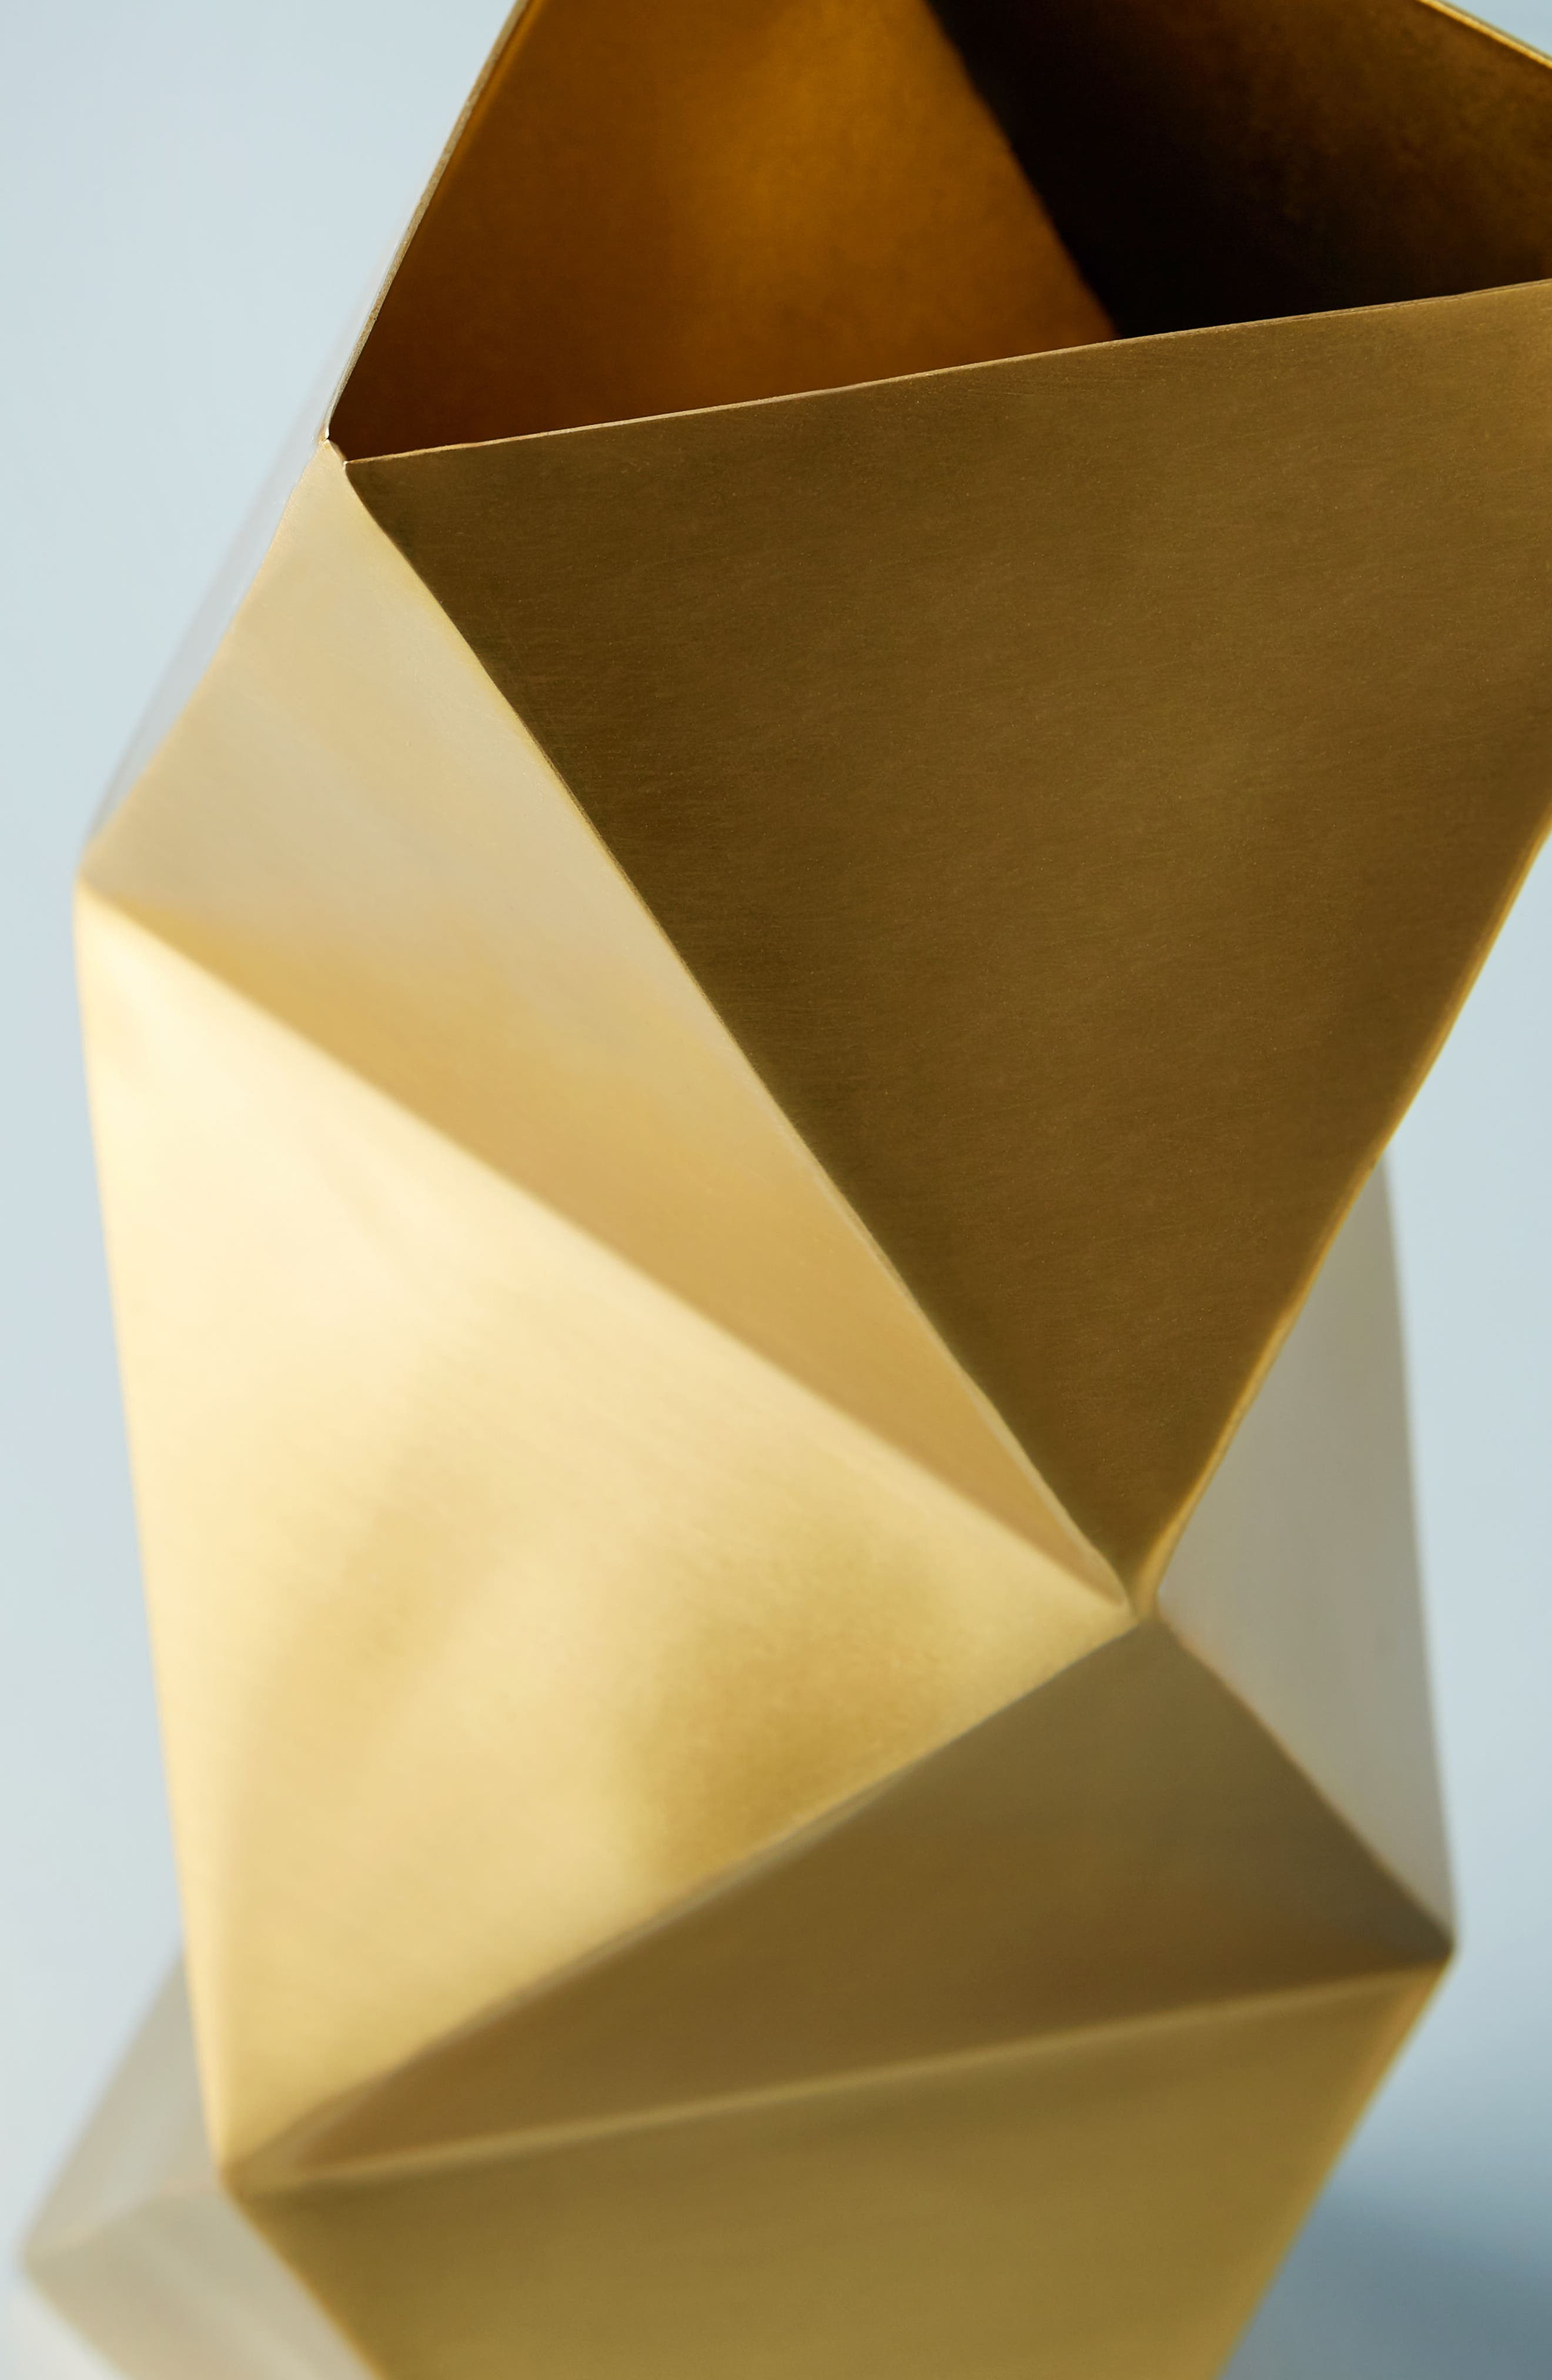 Faceted Triangle Metal Vase,                             Alternate thumbnail 2, color,                             710